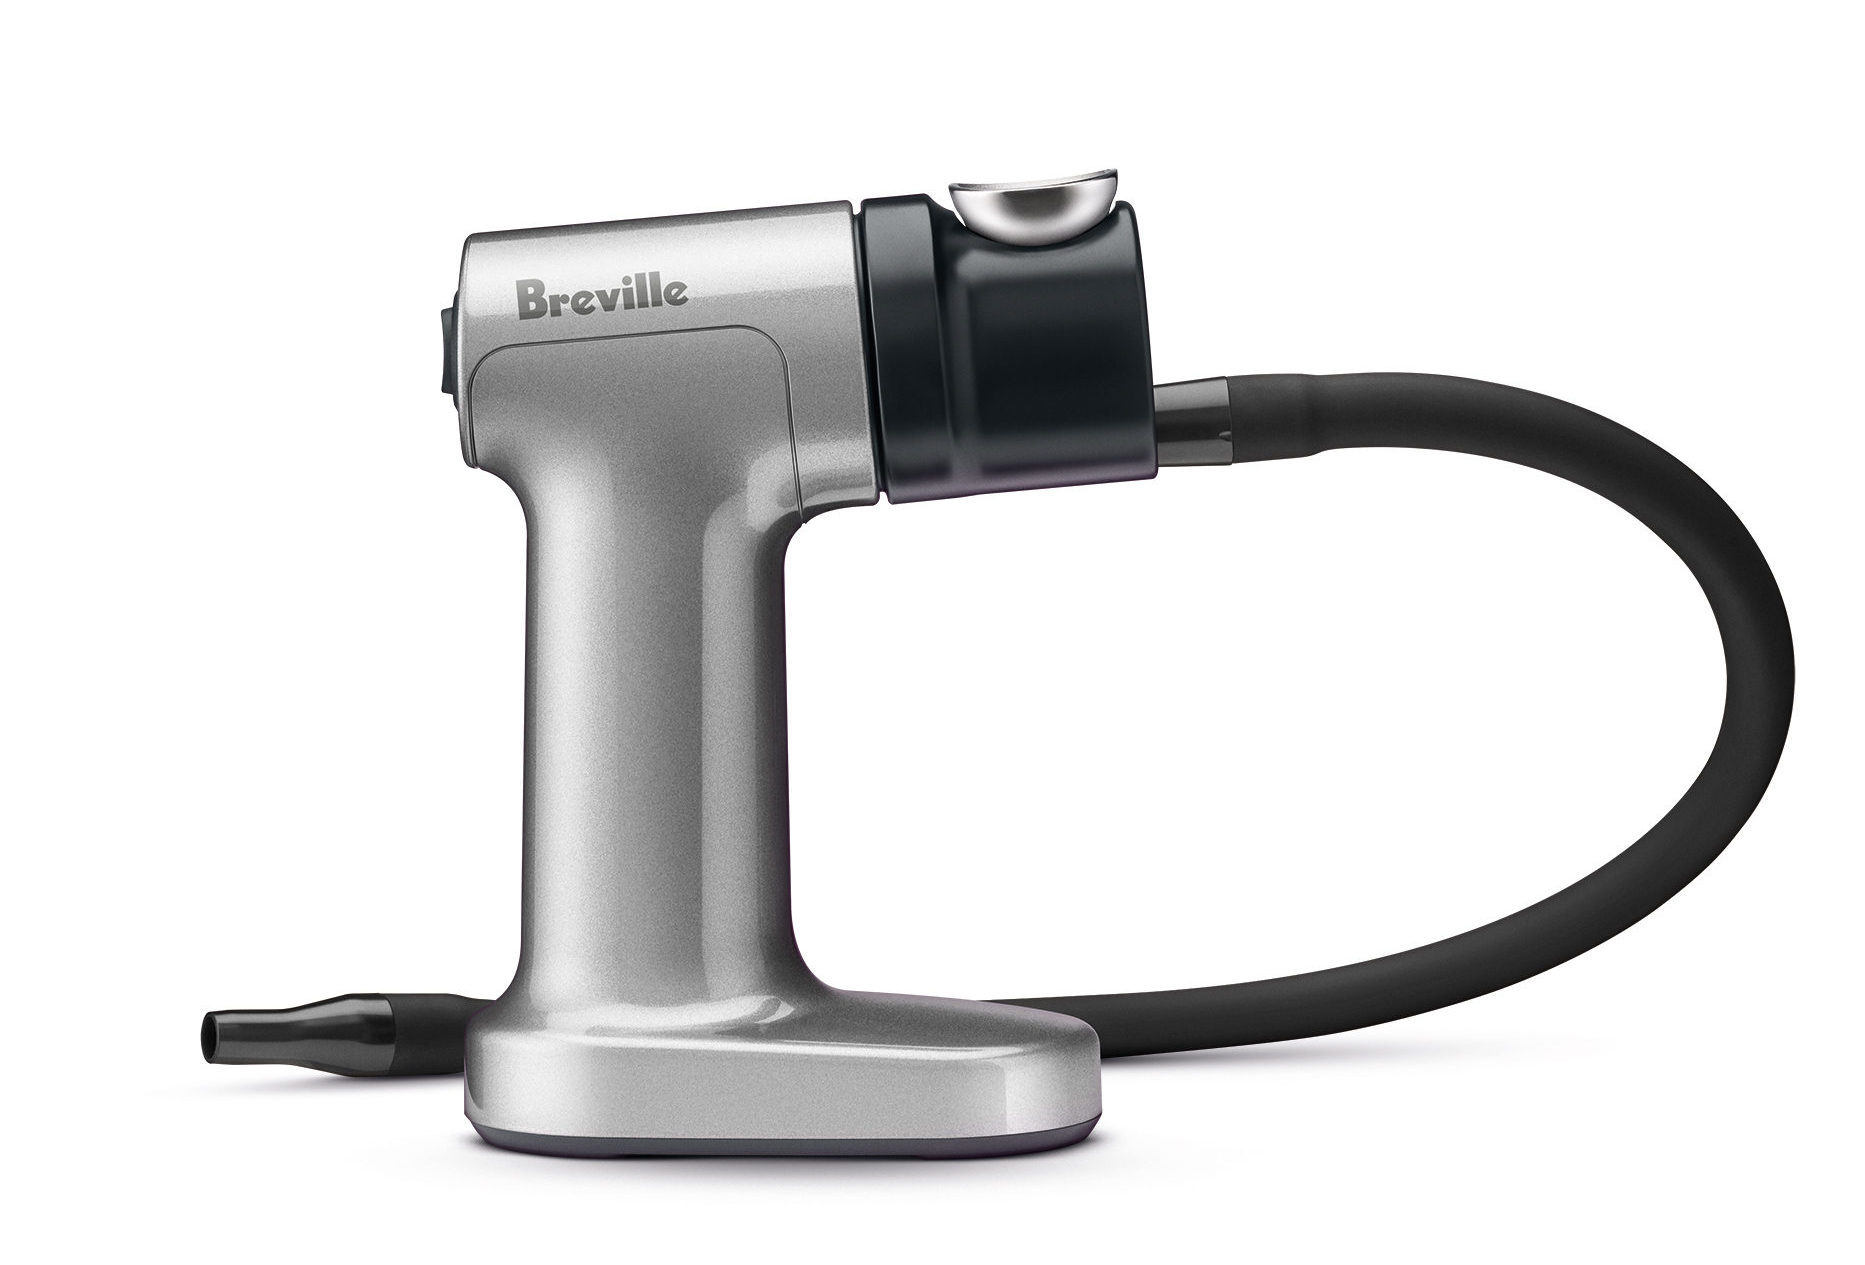 The Breville Smoking gun is a great Christmas gift for the foodies in your life